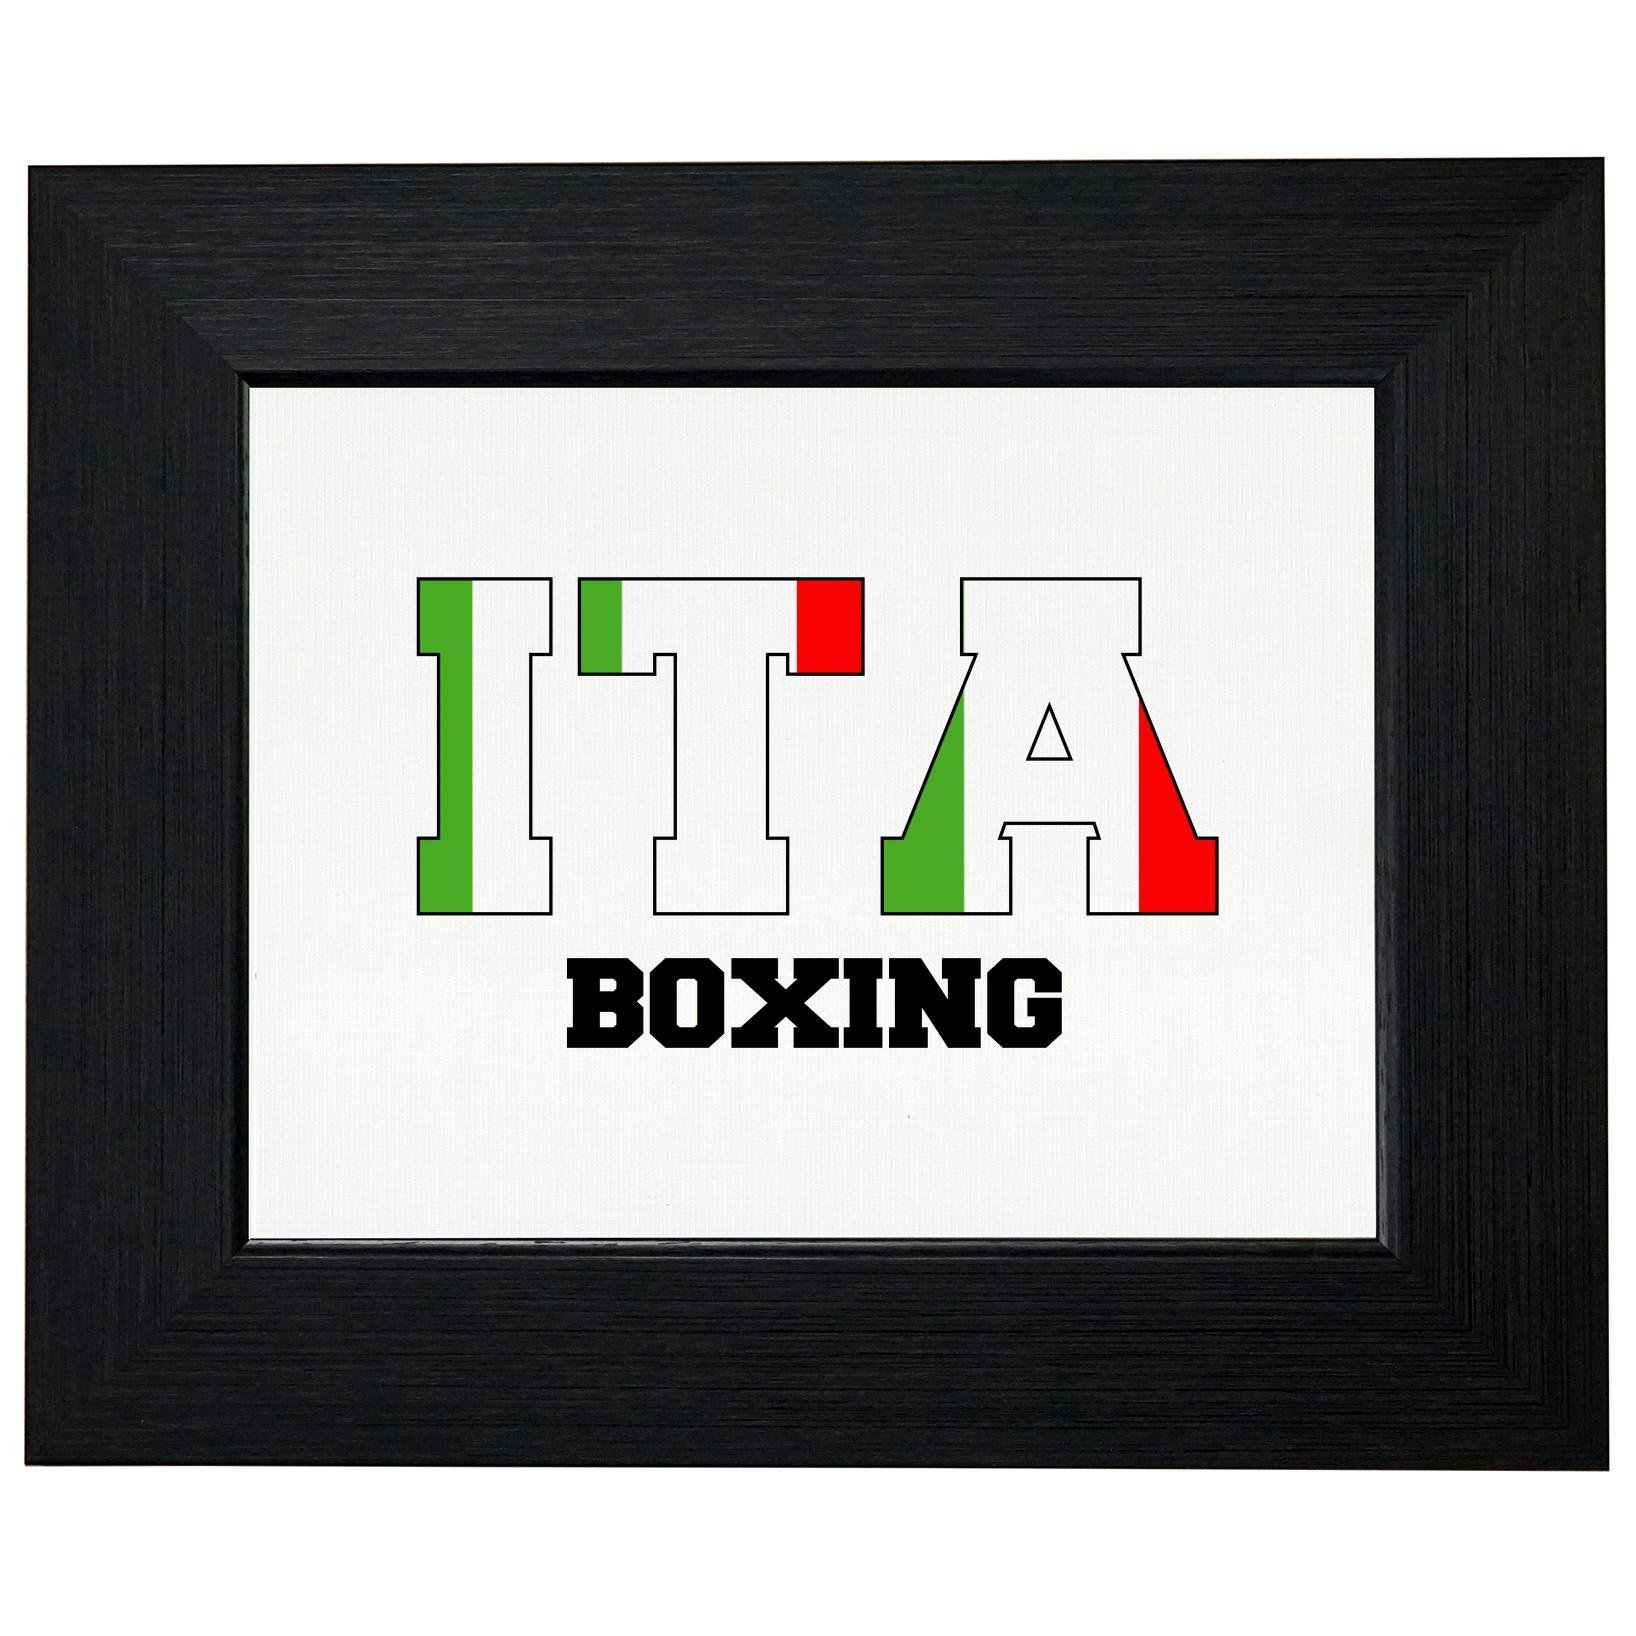 Italy Boxing - Olympic Games - Rio - Flag Framed Print Poster Wall or Desk Mount Options